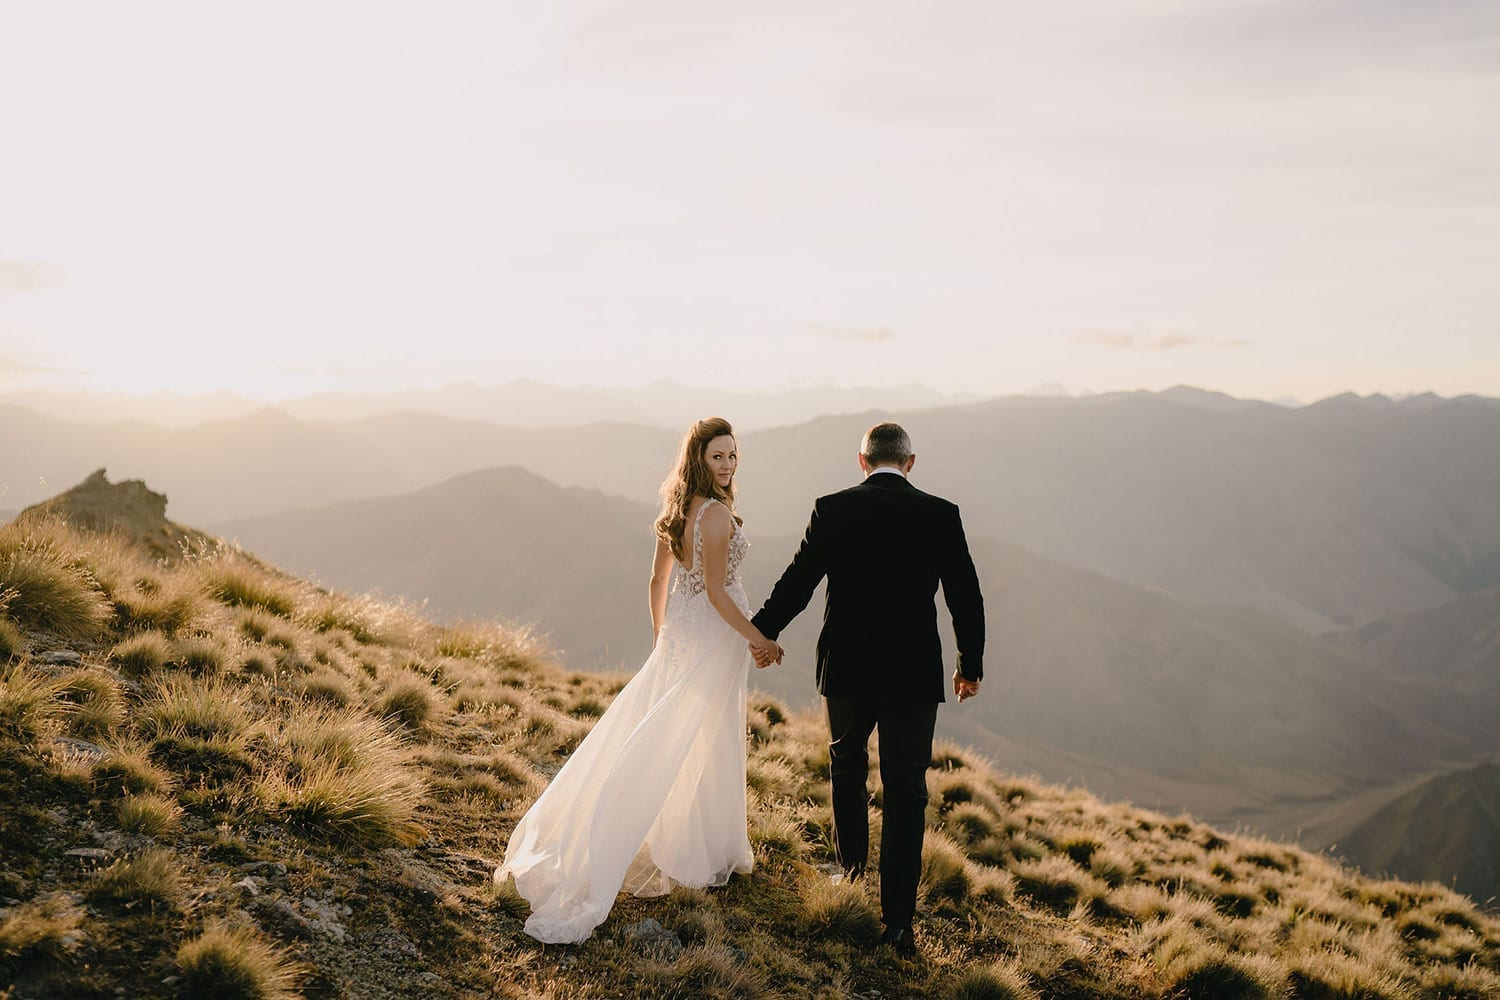 Vinka Design Features Real Weddings - bride in custom made gown, a beautiful intricate, sheer lace bodice, with a flowing, detachable, silk chiffon and tulle overskirt. The skirt had hand appliqued lace strategically placed throughout and trailing up from the train. Walking with groom looking over shoulder on mountain in NZ